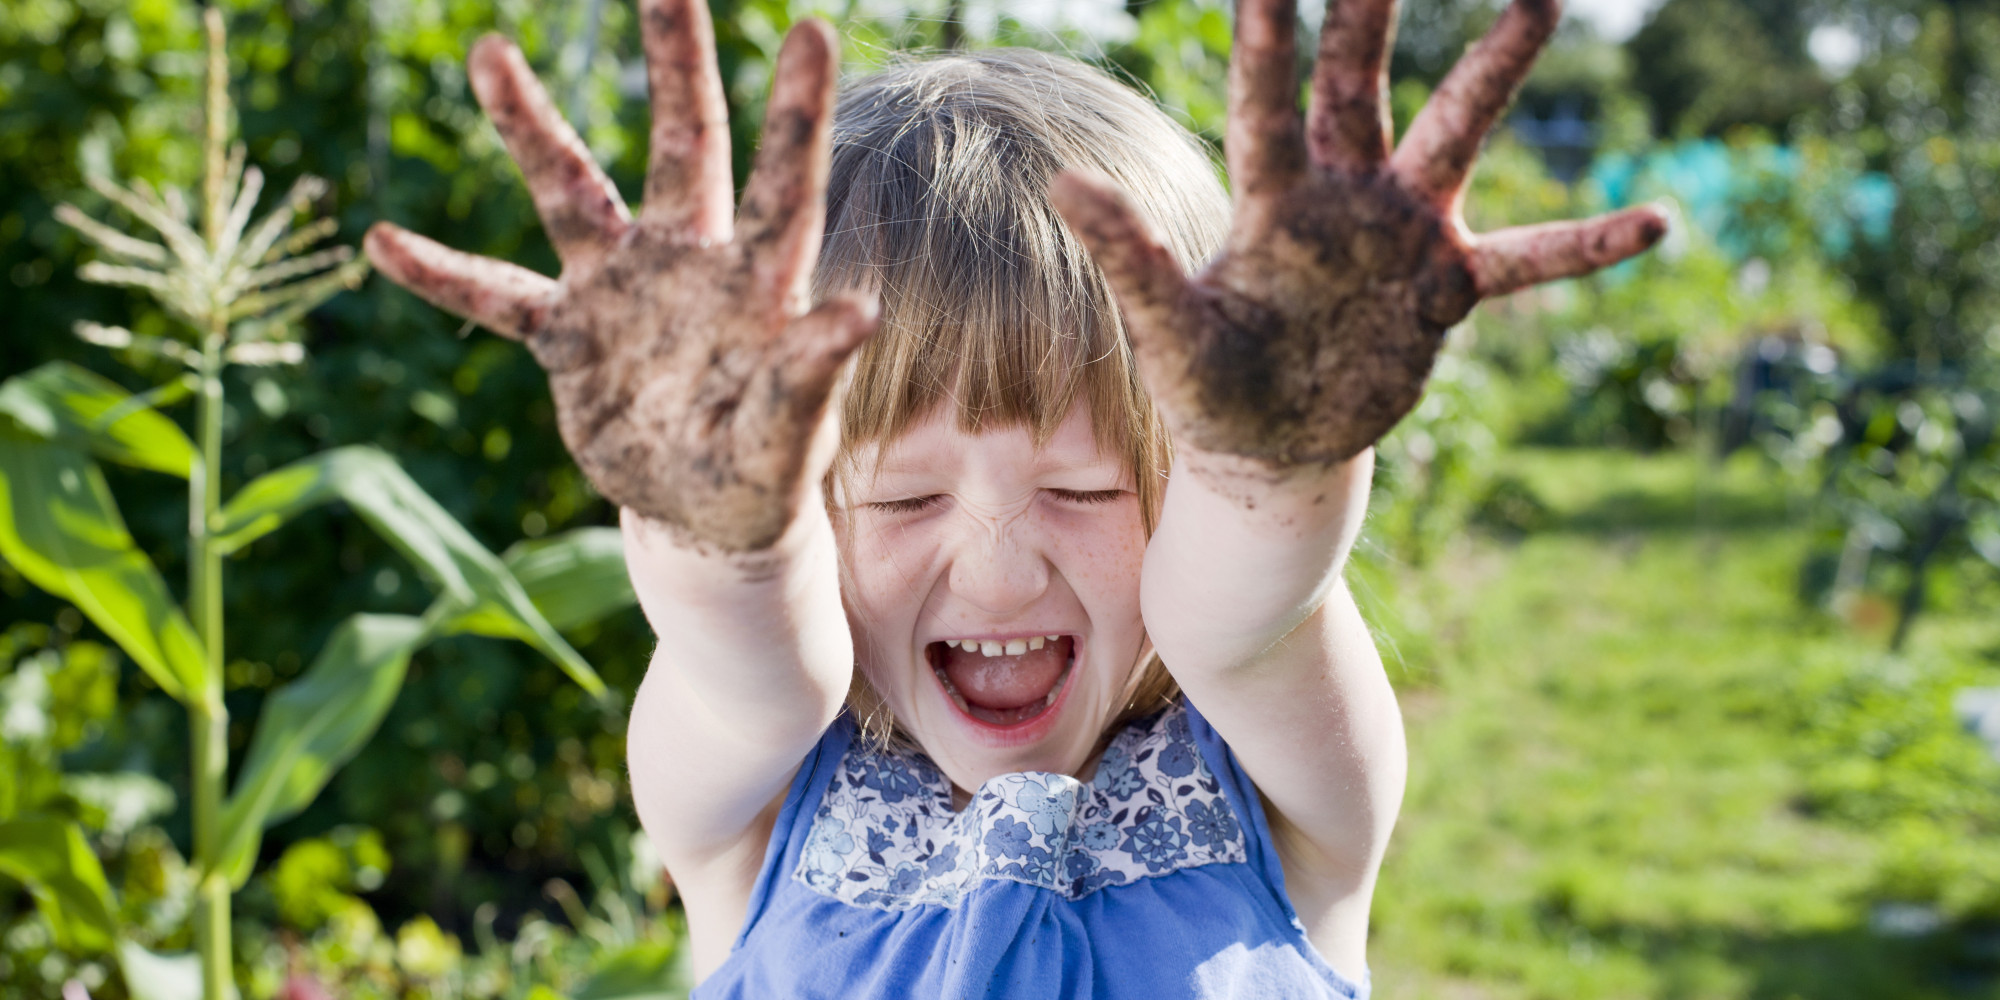 gardening counts as moderate and high intensity exercise for kids study finds huffpost